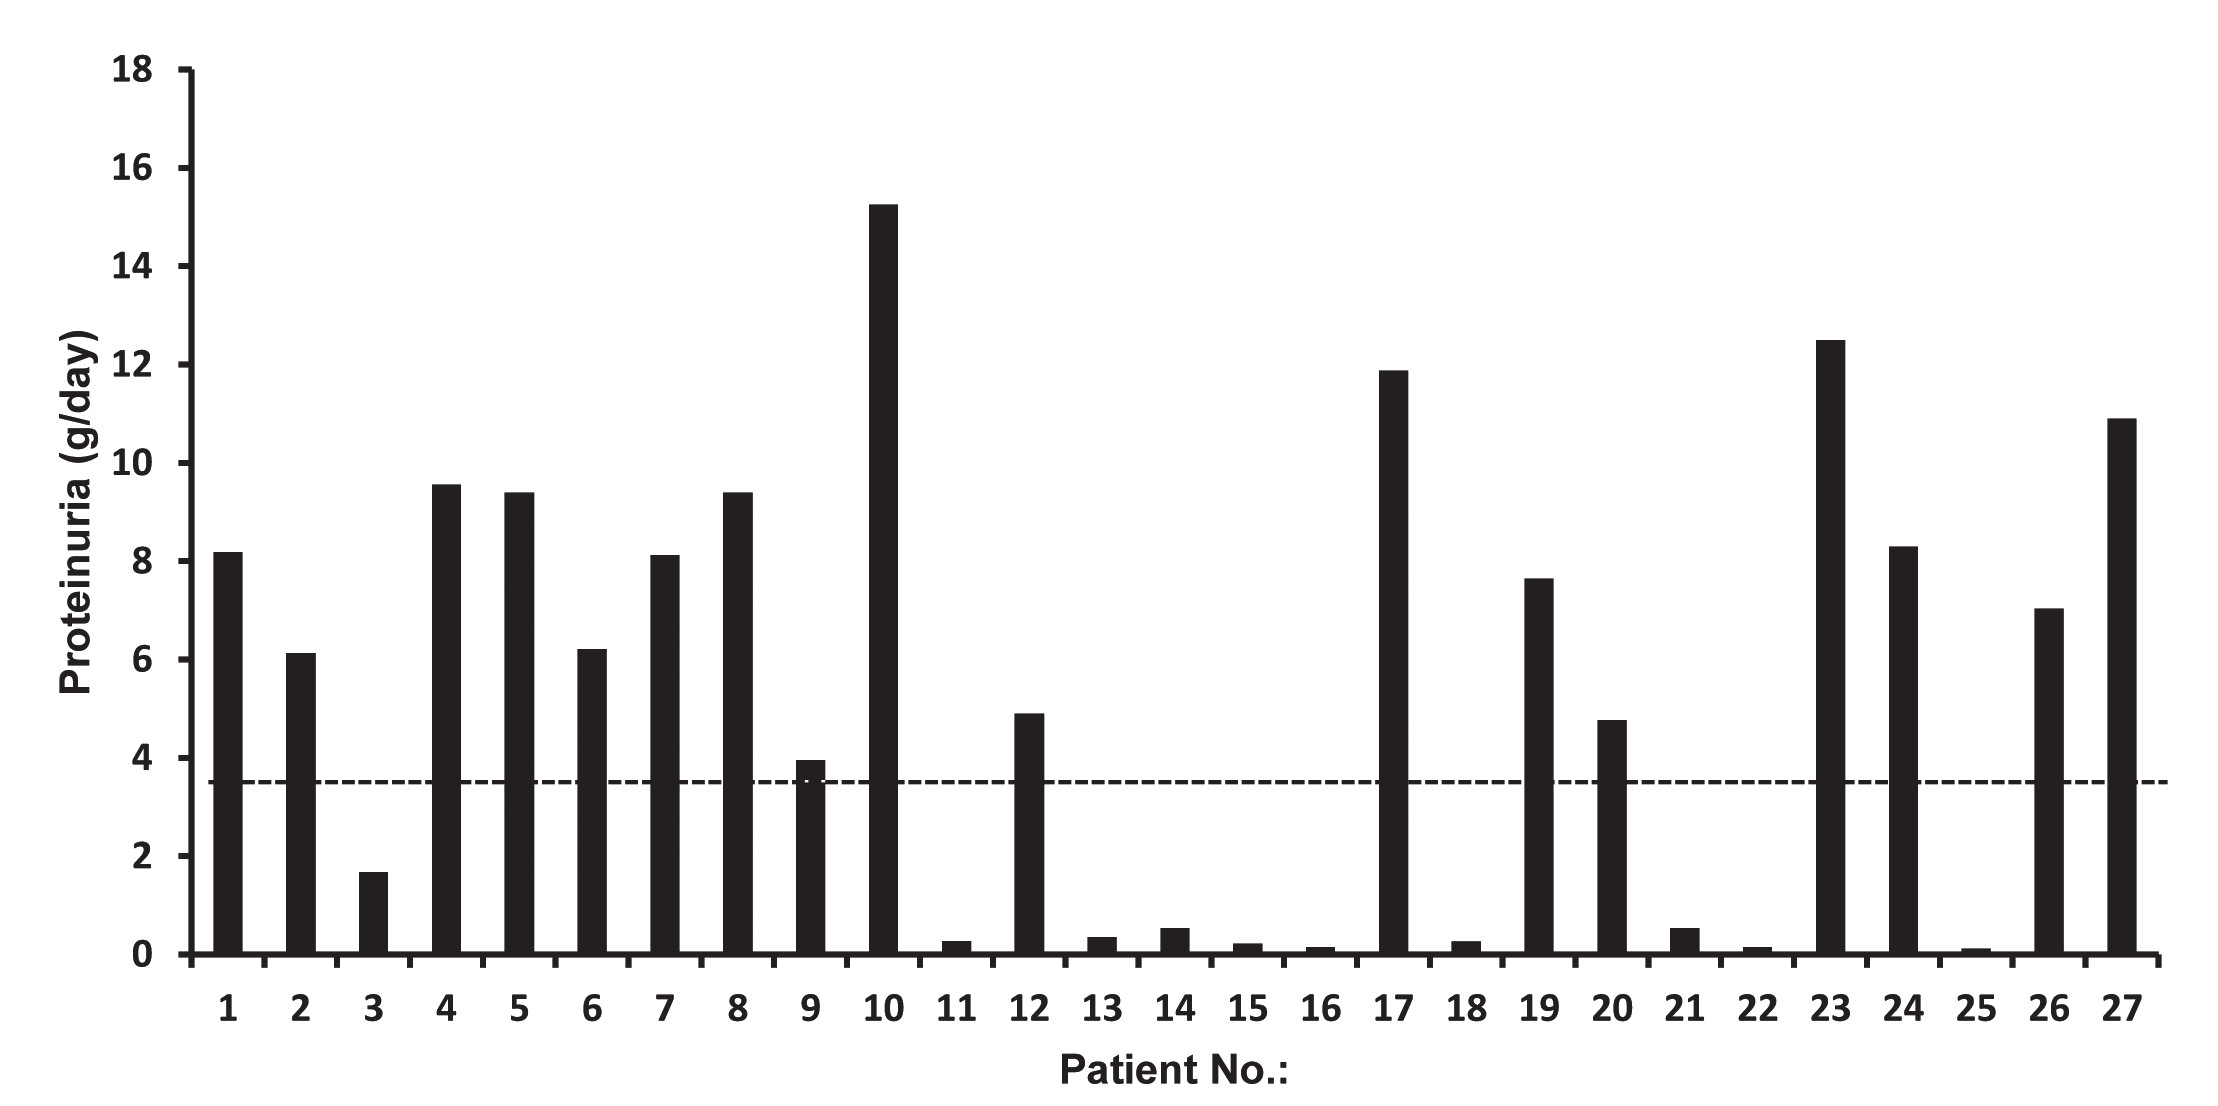 Fig. 2. Quantification of 24-hour proteinuria in patients with AL amyloidosis (n = 27).